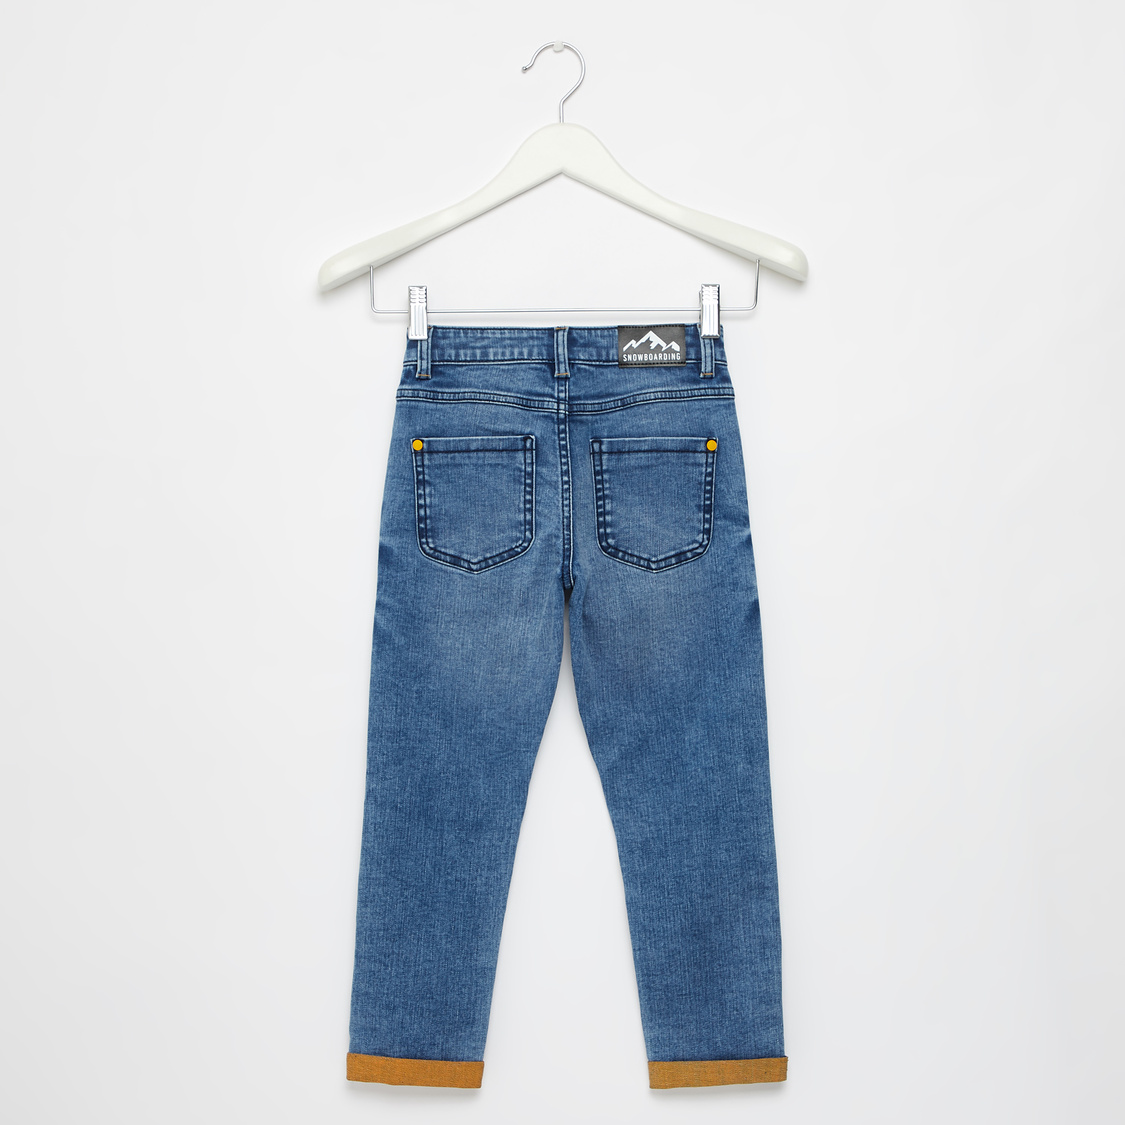 Full Length Embossed Detail Jeans with Pockets and Belt Loops